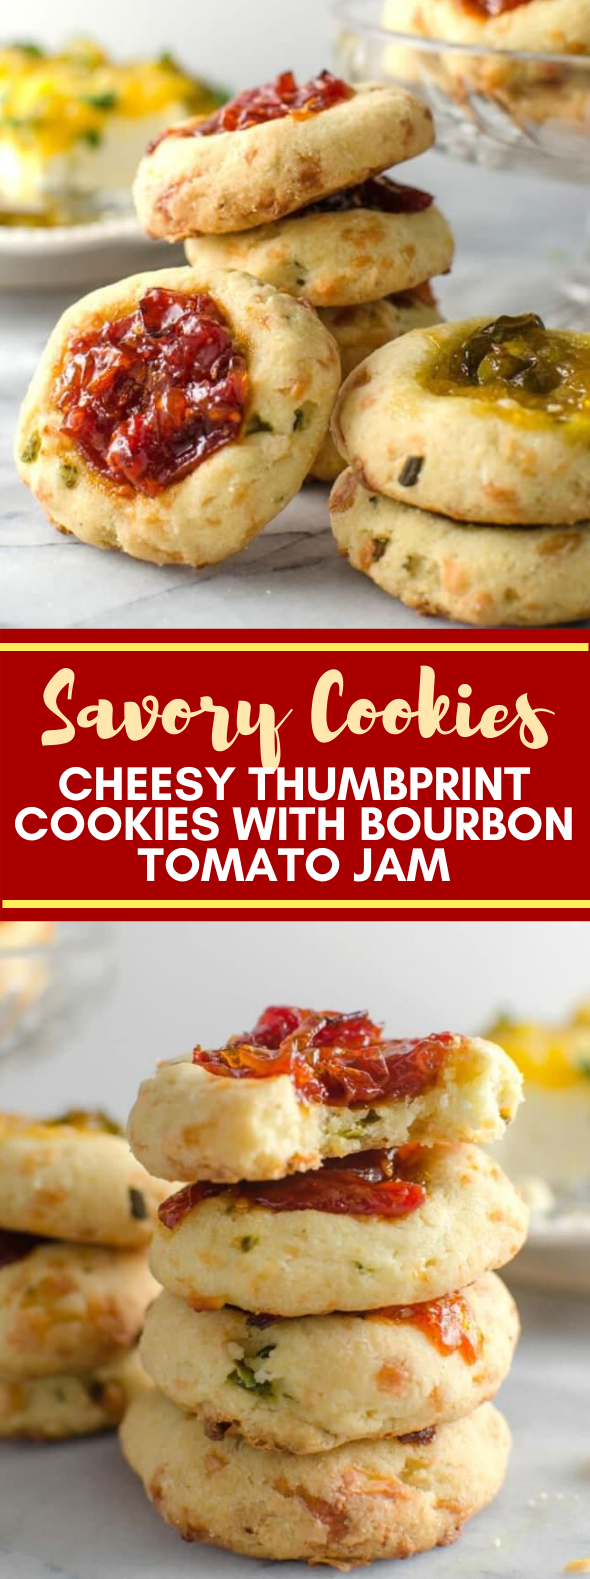 Cheesy Thumbprint Cookies with Bourbon Tomato Jam { Savory Cookies } #appetizers #vegetarian #jam #cookies #meals